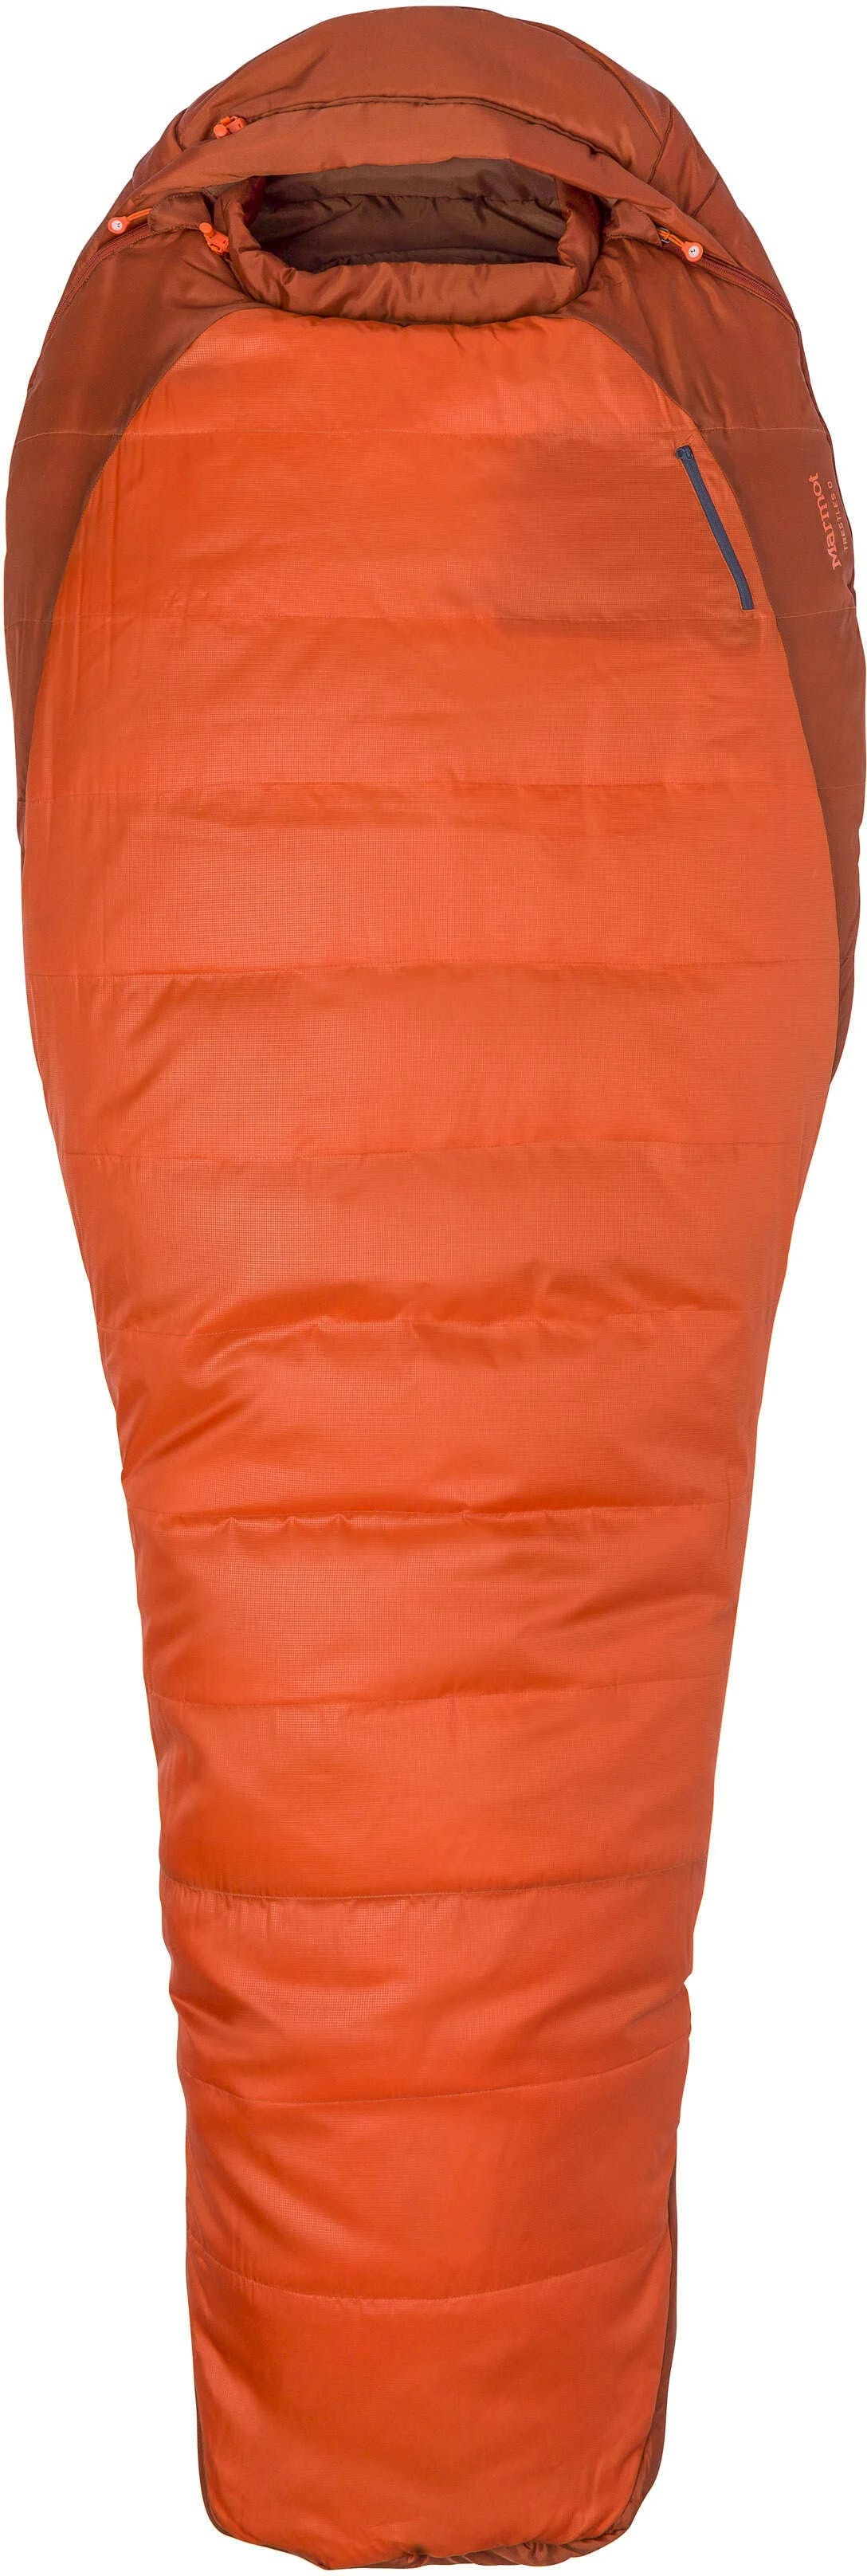 Marmot Trestles 0 Sleeping Bag - Orange Haze/Dark Rust